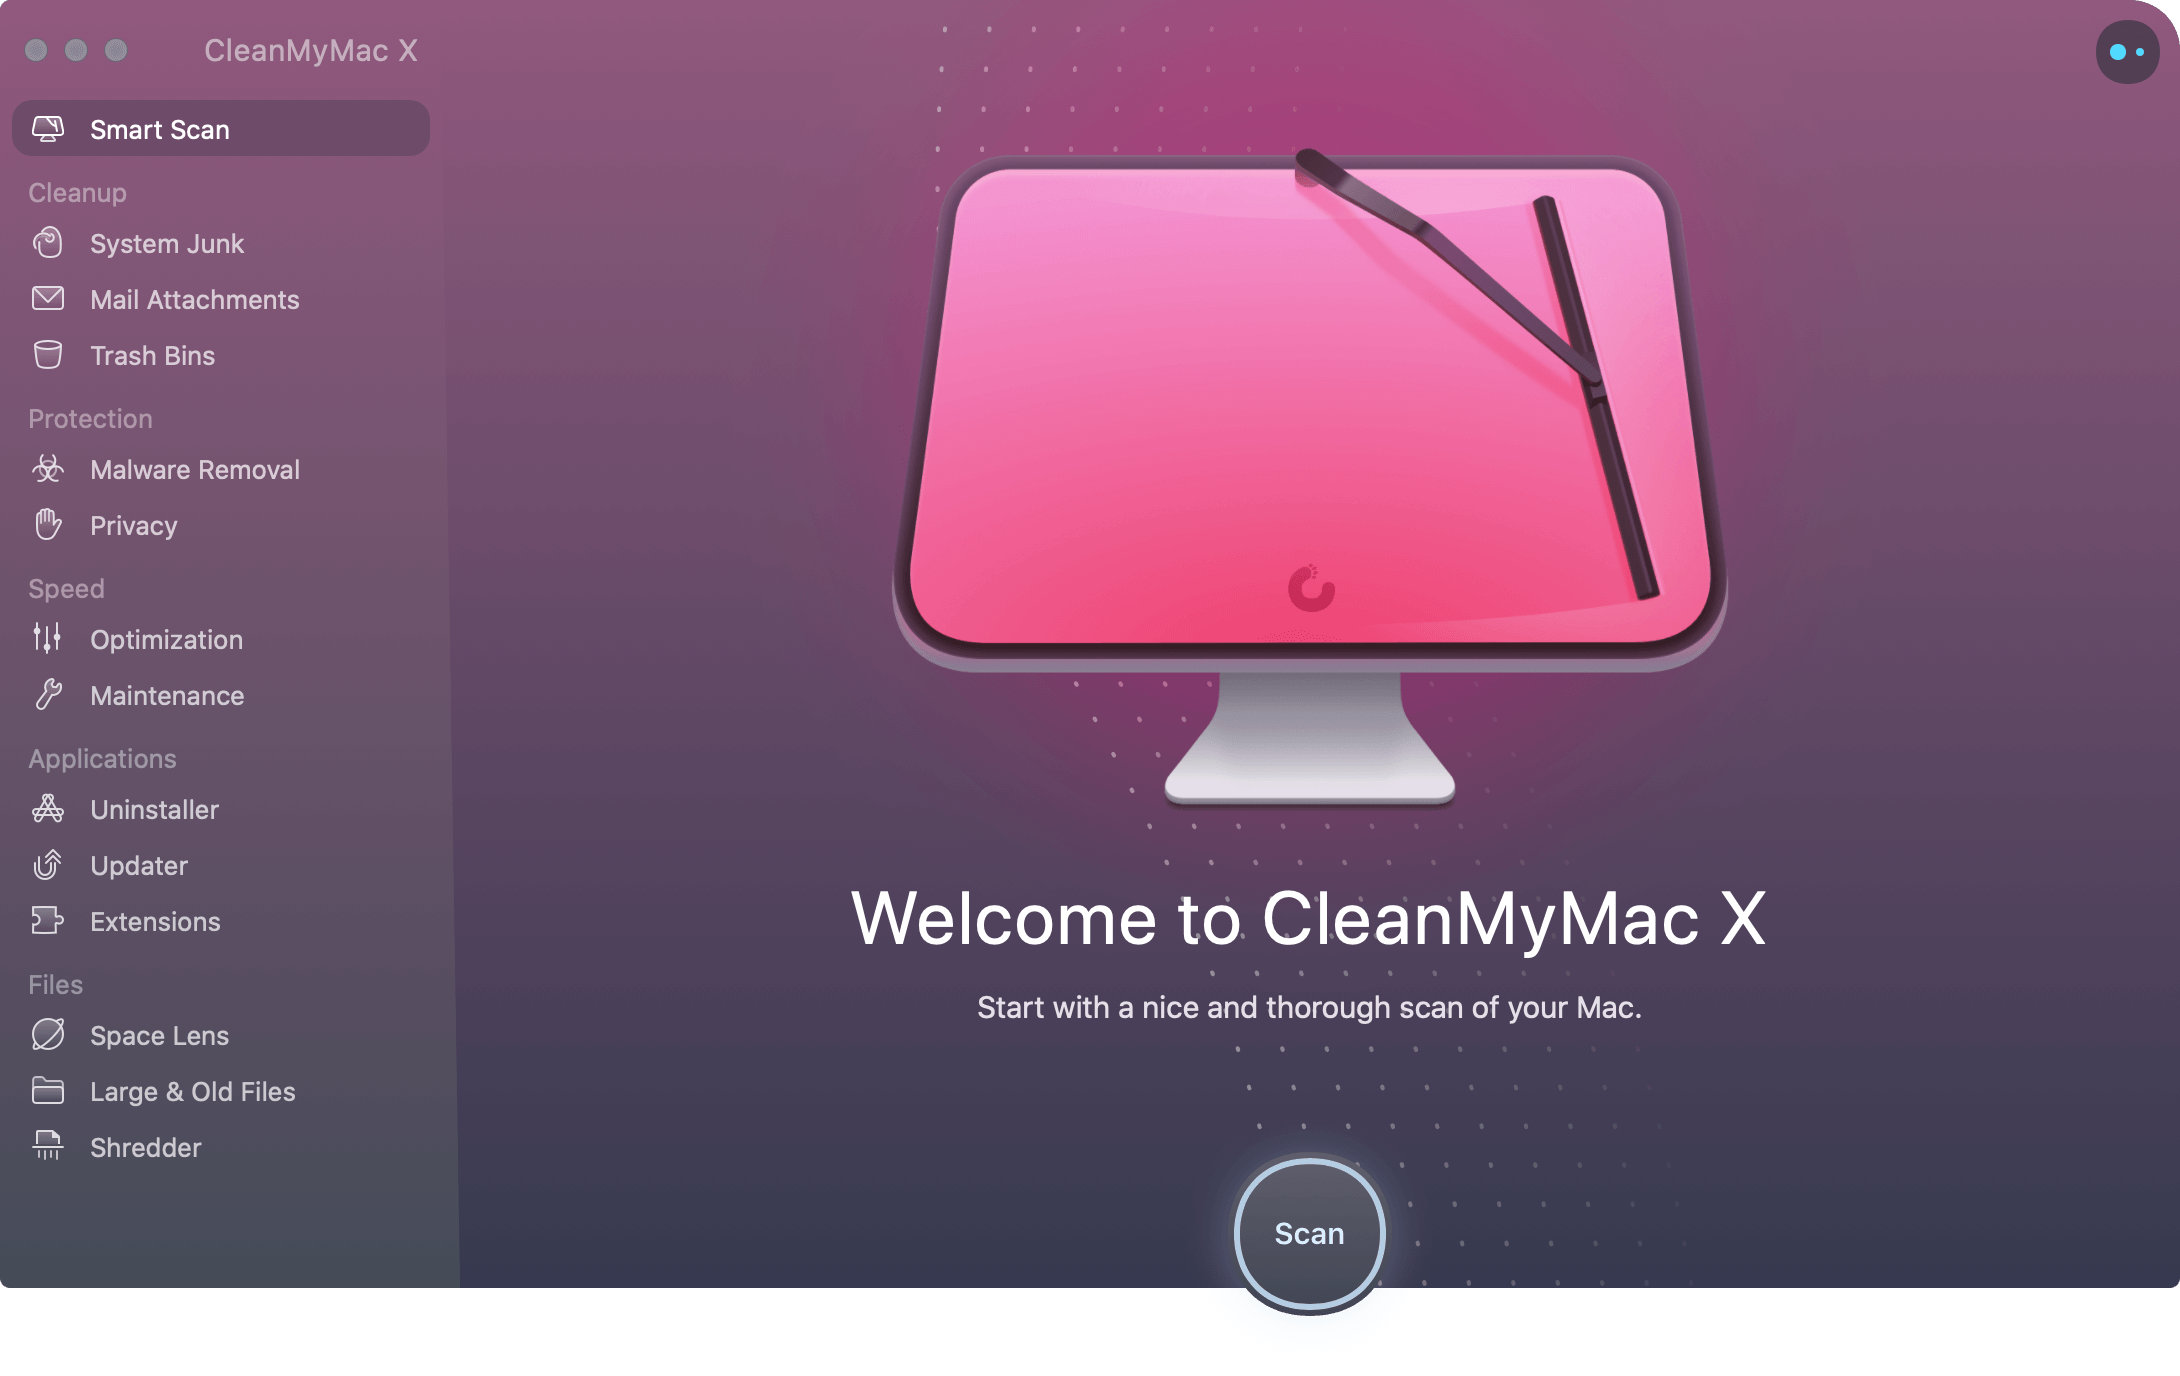 CleanMyMac X front